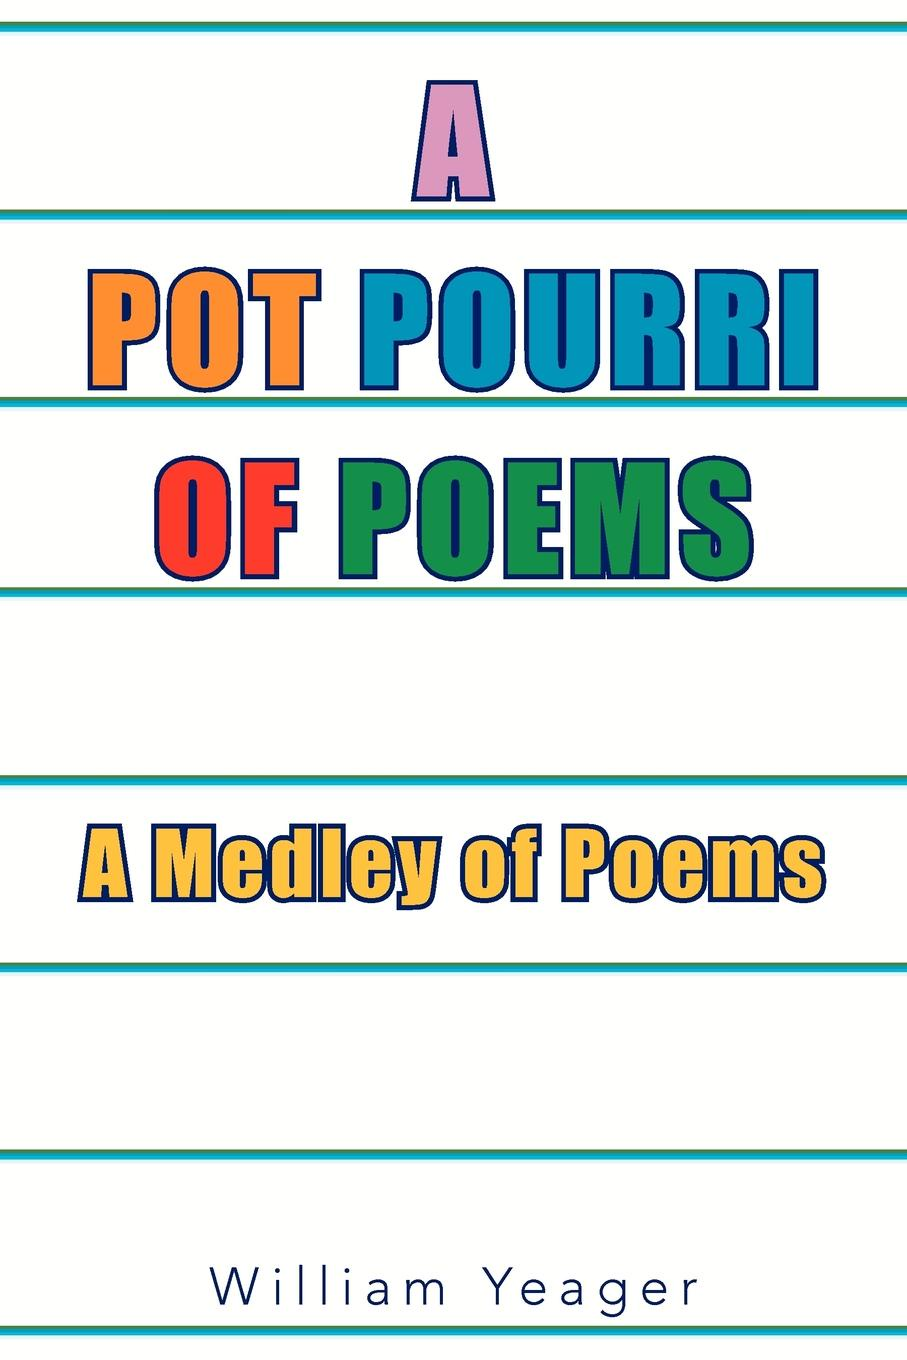 William Yeager The Pot Pourri of Poems. A Medley Poems